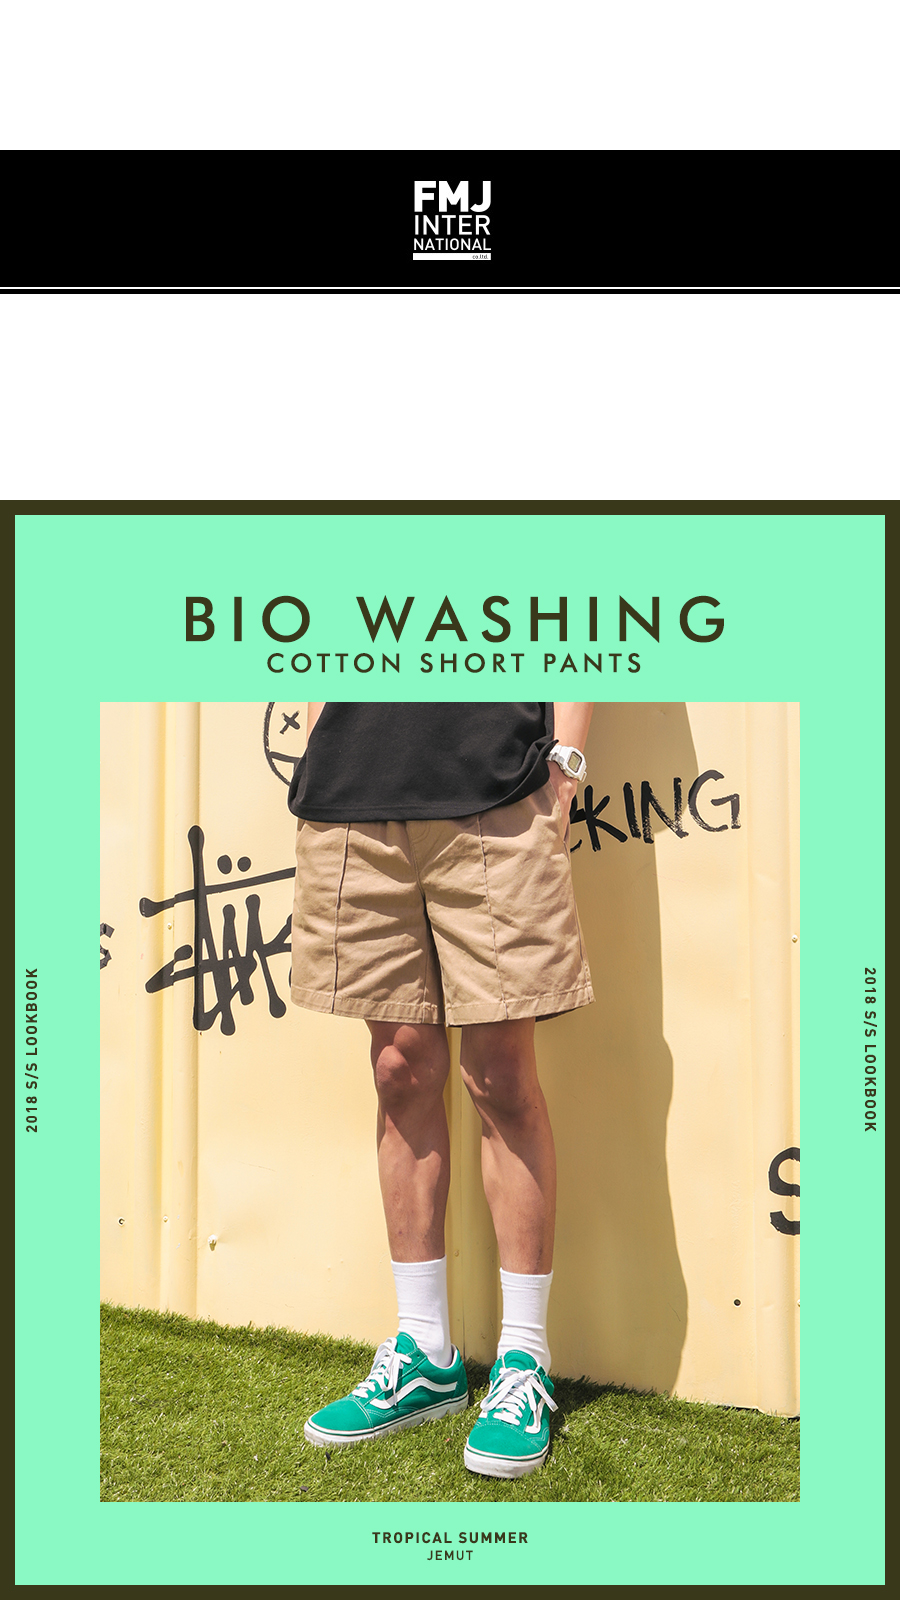 20180518_bio_washing_short_pants_model_kj_01.jpg